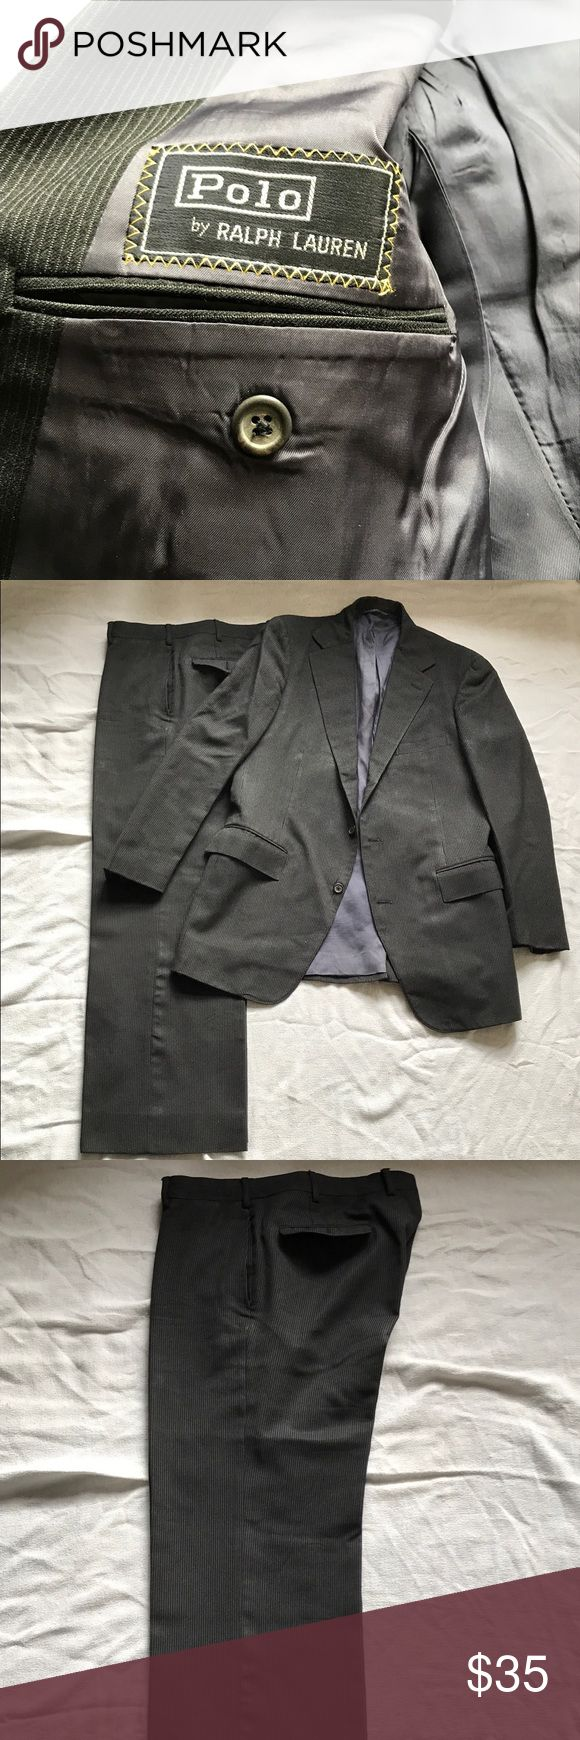 """Polo by Ralph Lauren Pinstriped Two Piece Suit Polo by Ralph Lauren Black and Grey Pinstripe Two Piece Suit.   Damaged by heat from iron or steam.   Final Price  Measurements:   Pants Waist: 36"""" Length: 40"""" In Seam: 30""""   Jacket: Pit to Pit: 40"""" Shoulders: 19.5""""  Length: 32"""" Polo by Ralph Lauren Suits & Blazers Suits"""